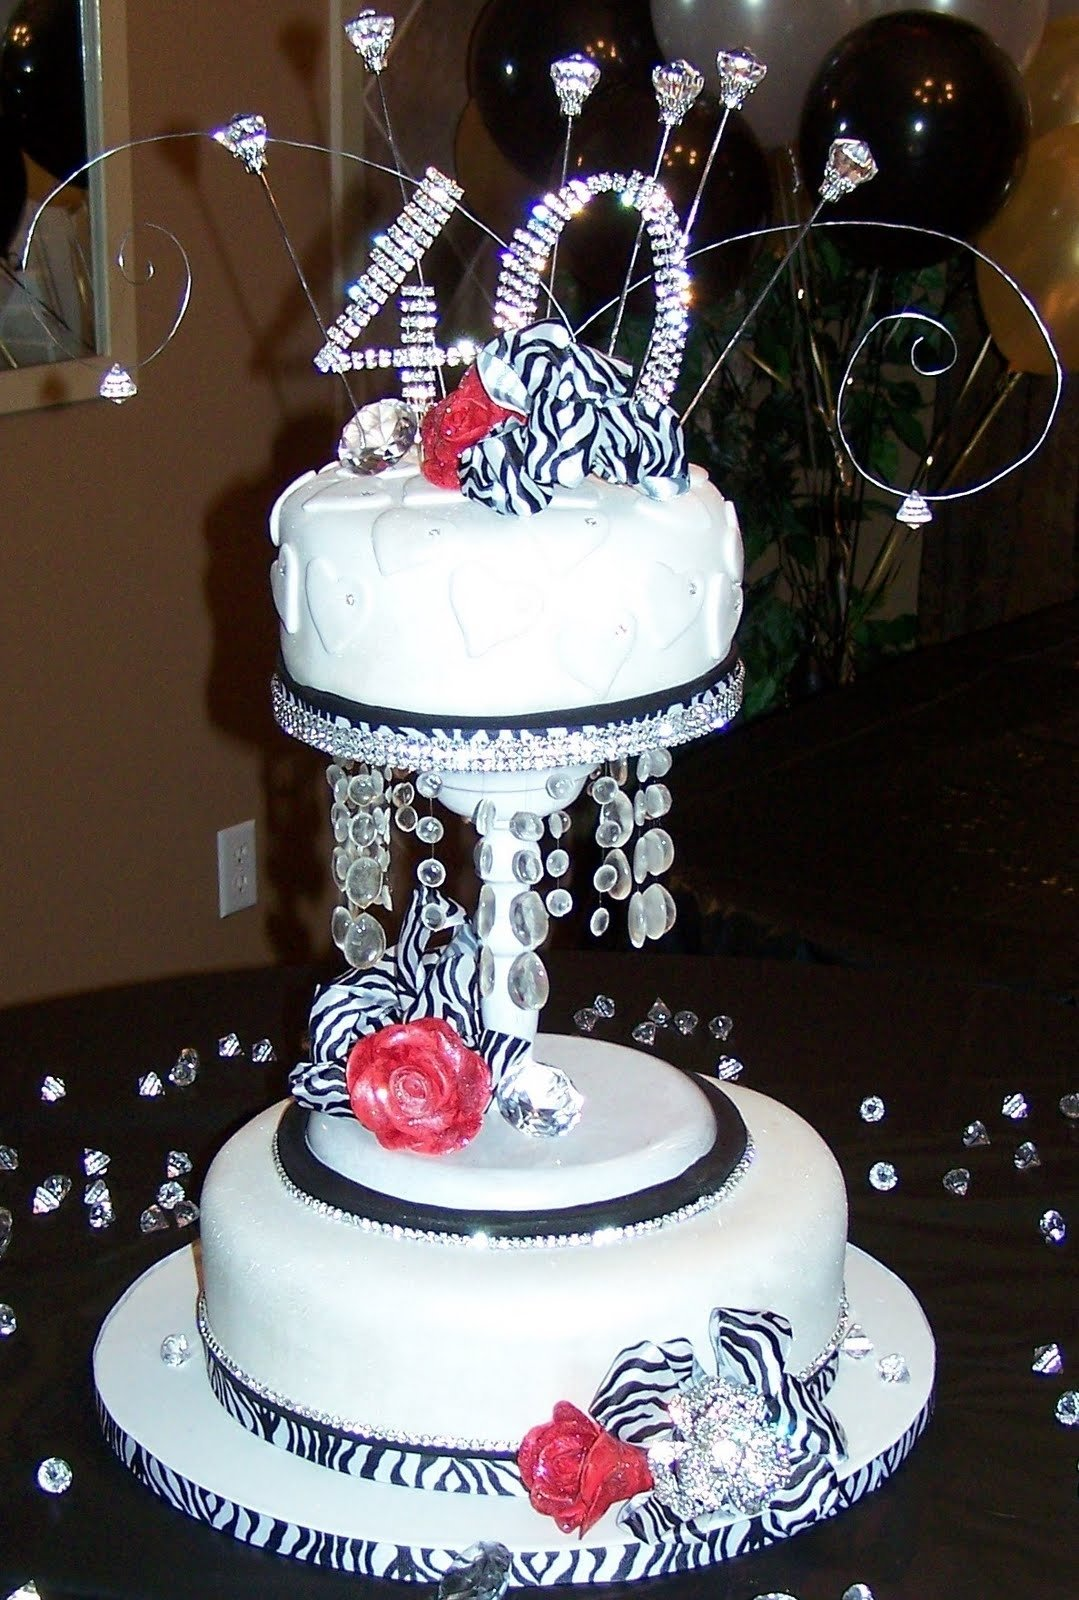 10 Lovely Ideas For 40Th Birthday Party Female Bling Cake Designs Pin 40th